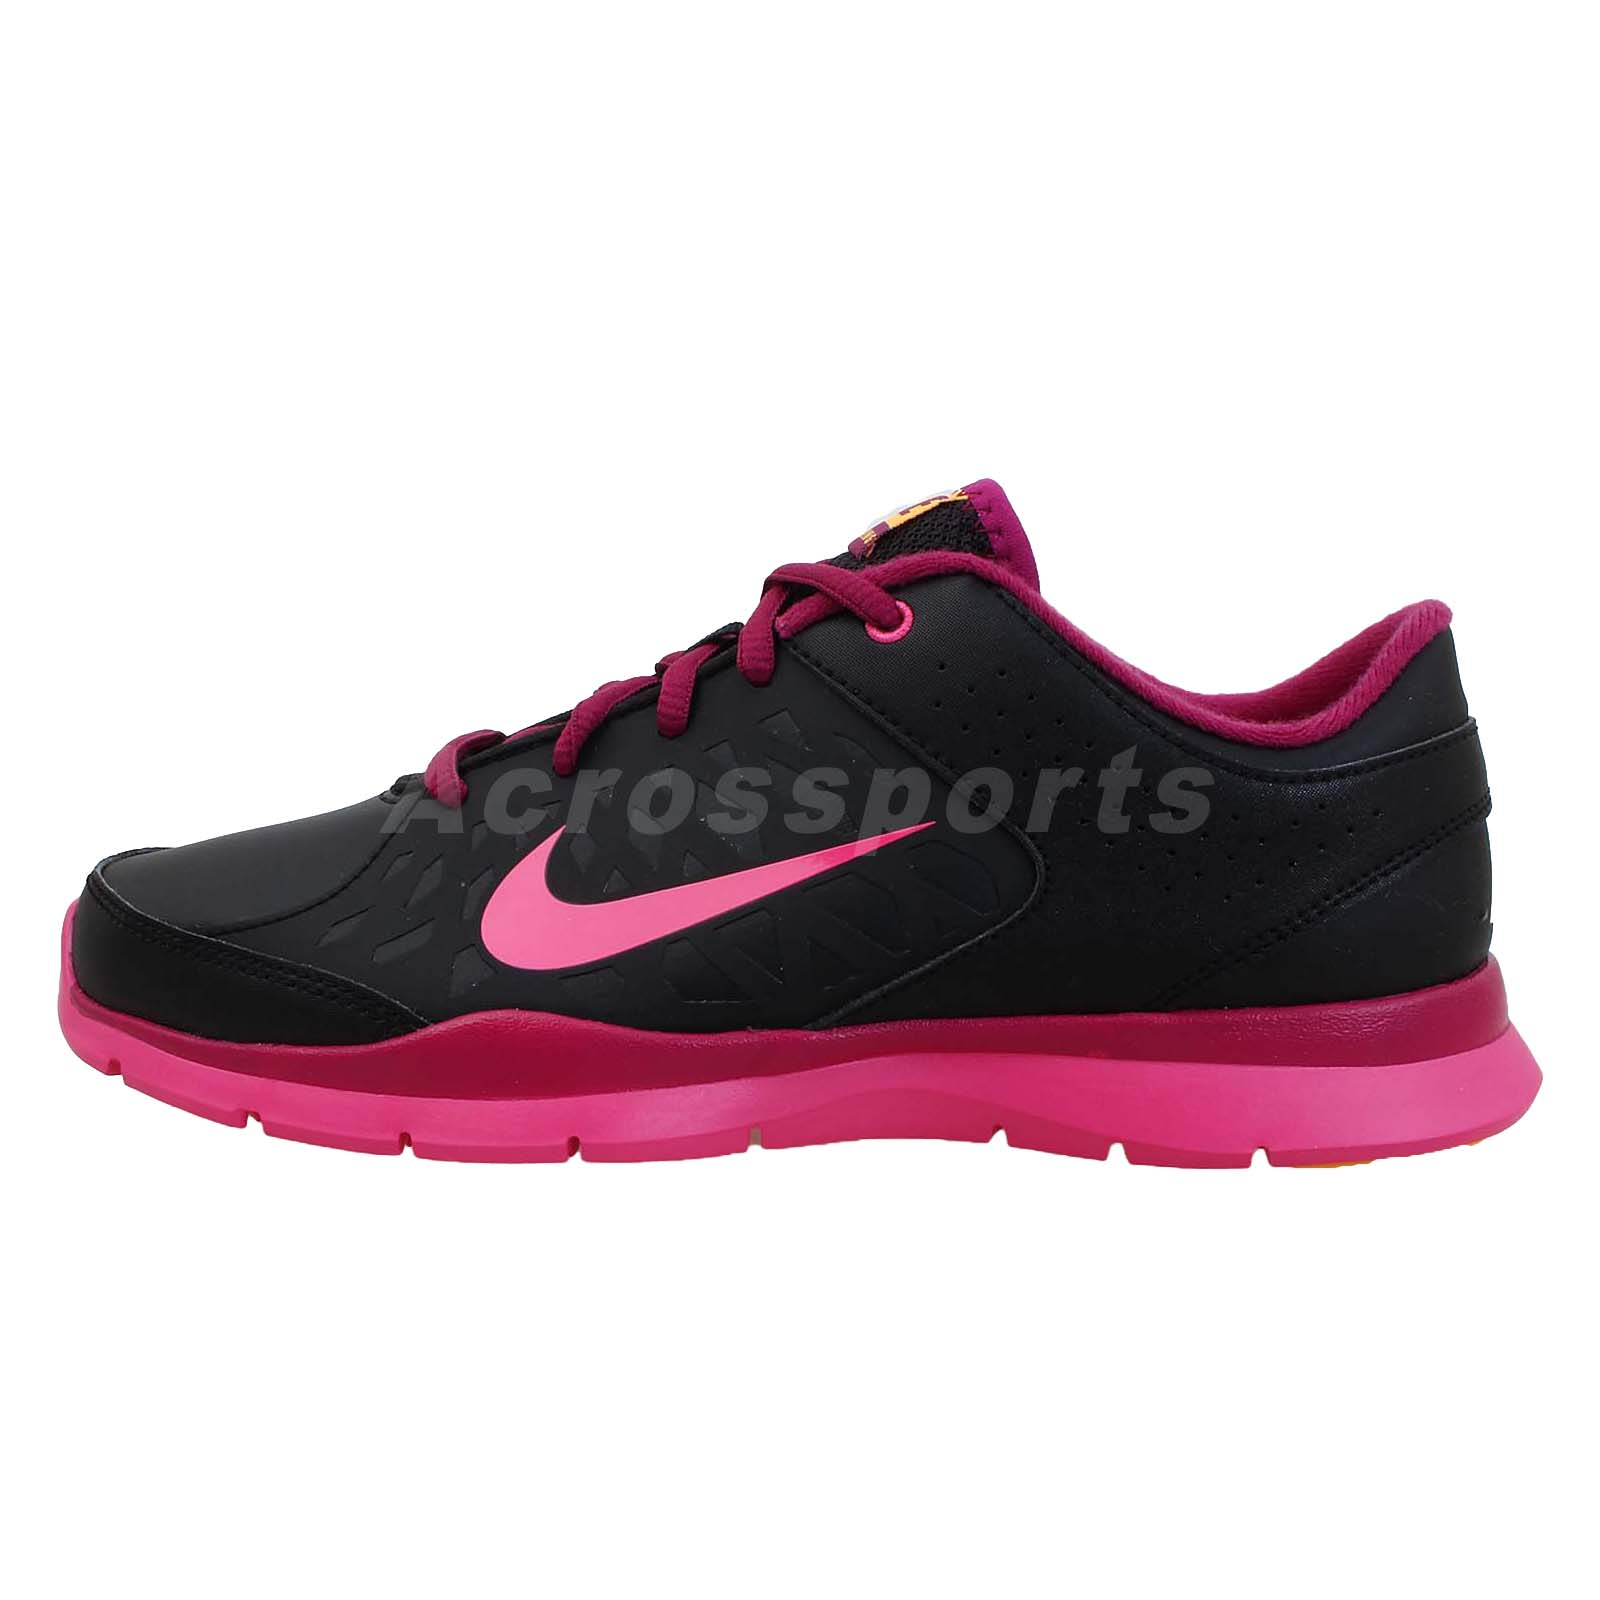 Unique You Should Probably Know This Womens Nike Cross Training Shoes